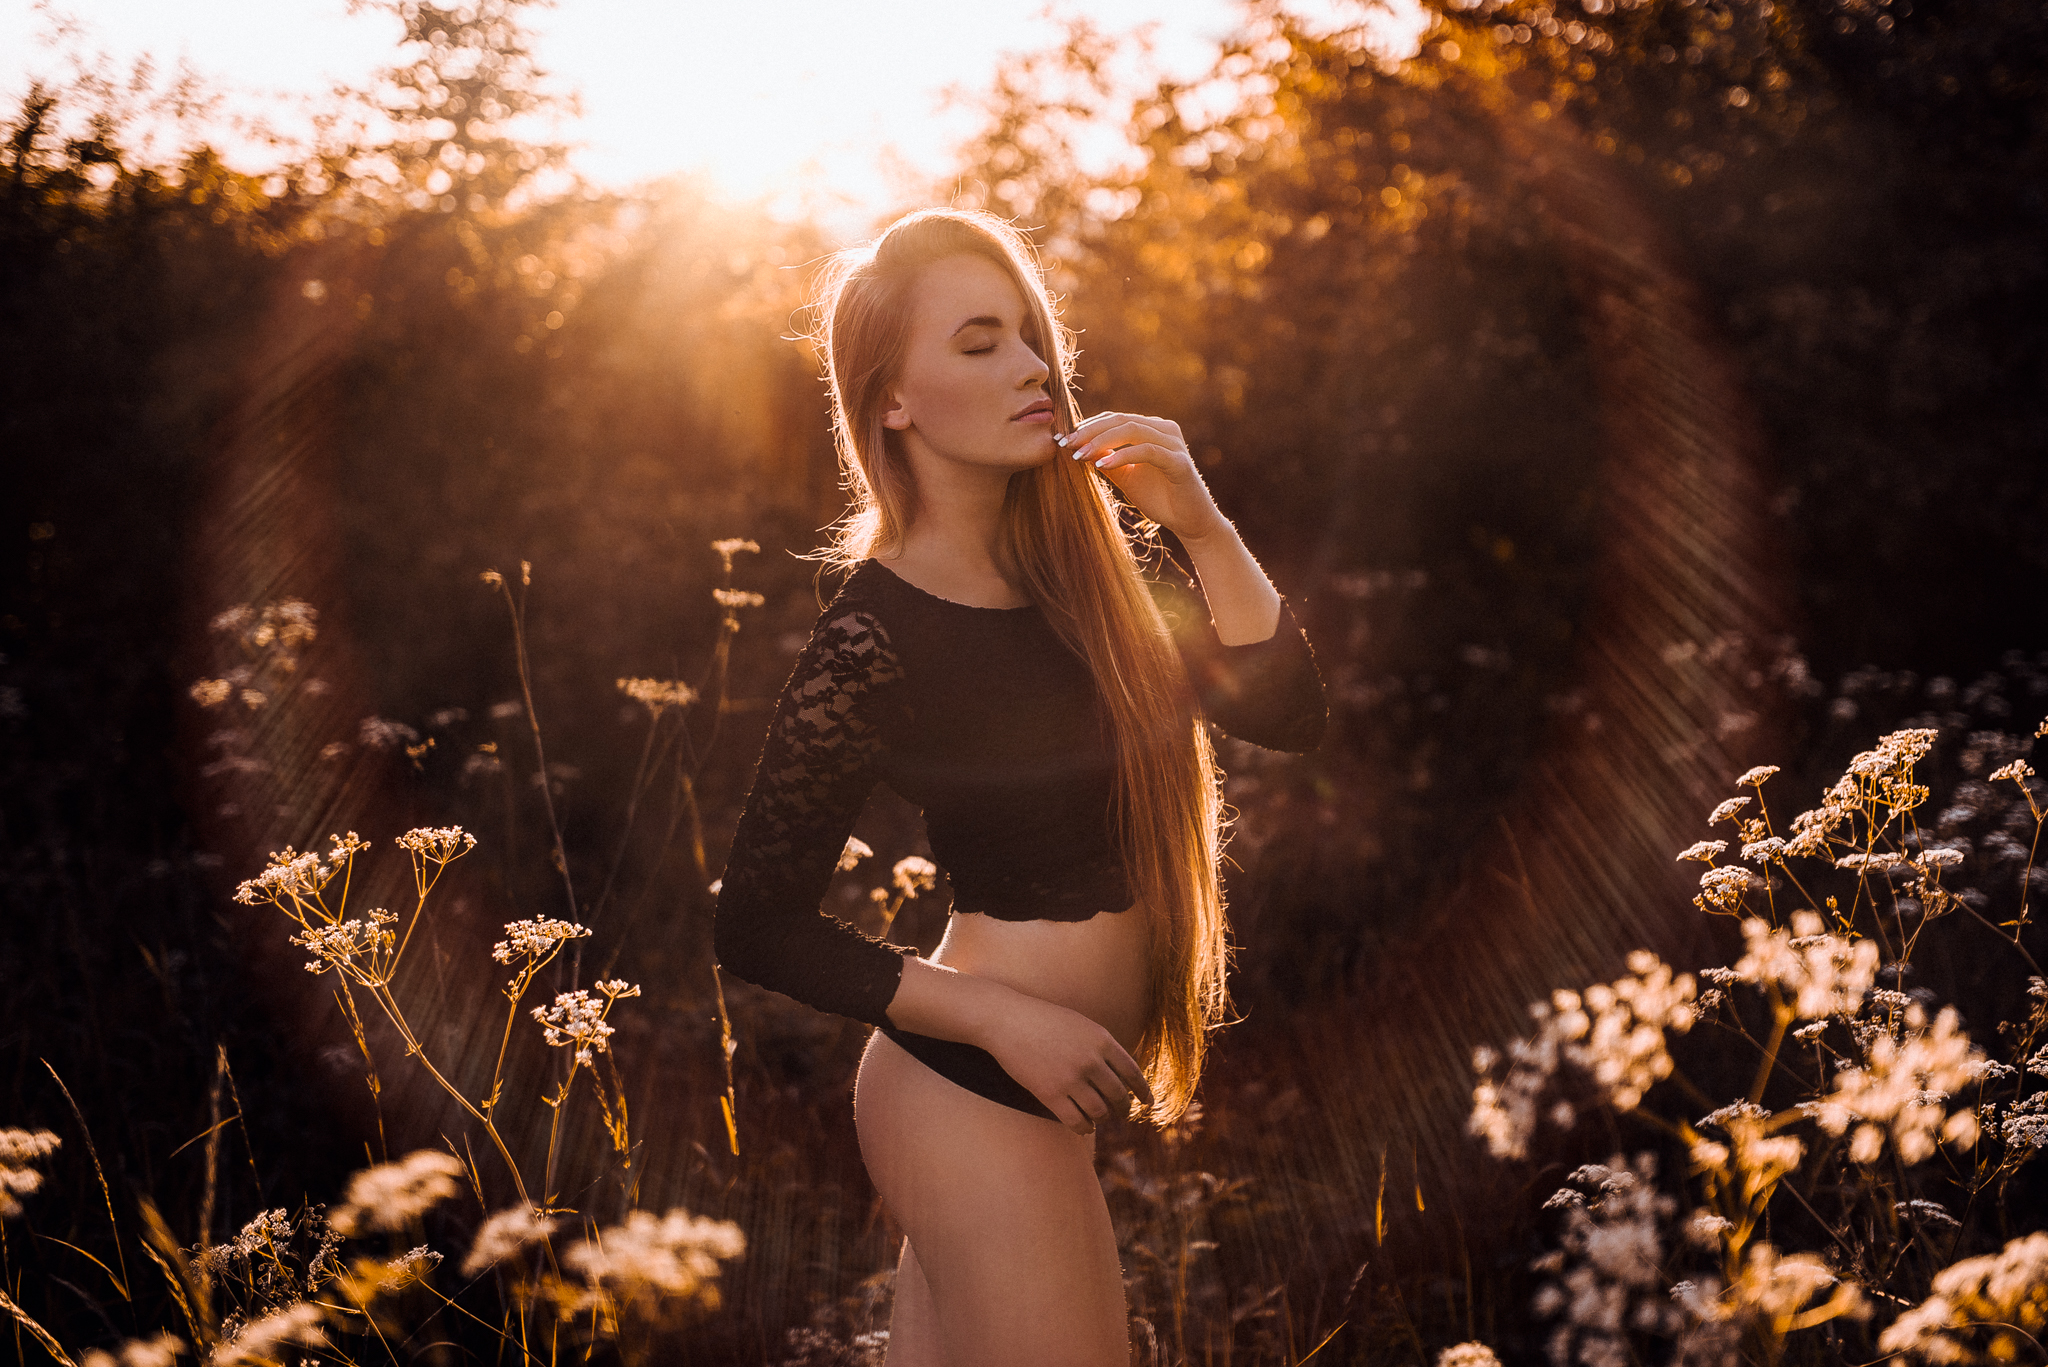 sunset, západ slnka, dievča, girl, art, emotion, feel, hair, glamour, body, sexy, nature, summer, hot, redhead, freckles, spring, gentle, fine, spontaneous, long hair, lens flare, natural light, nature